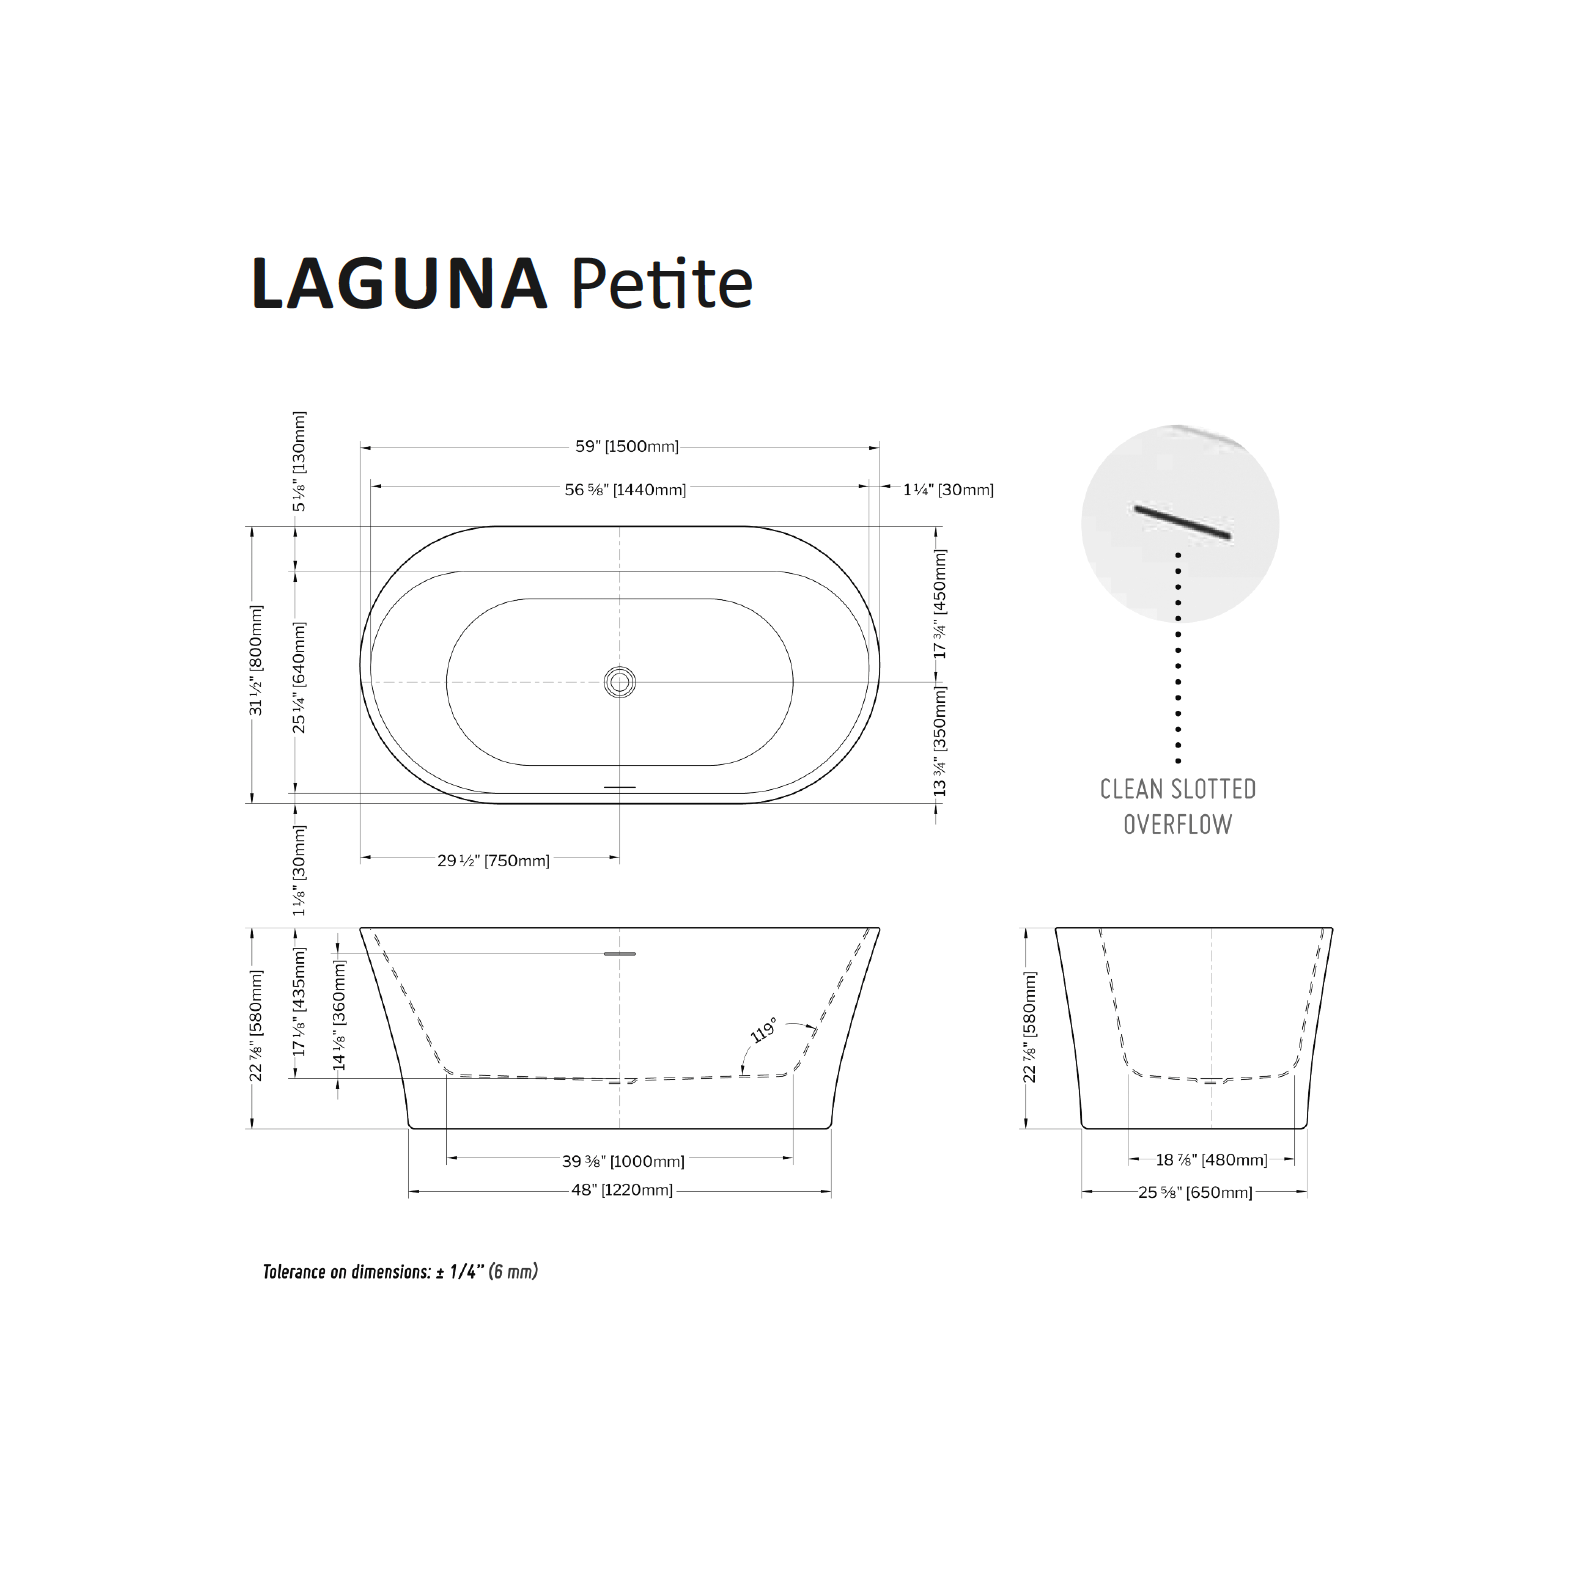 Laguna Petite Tub Specifications